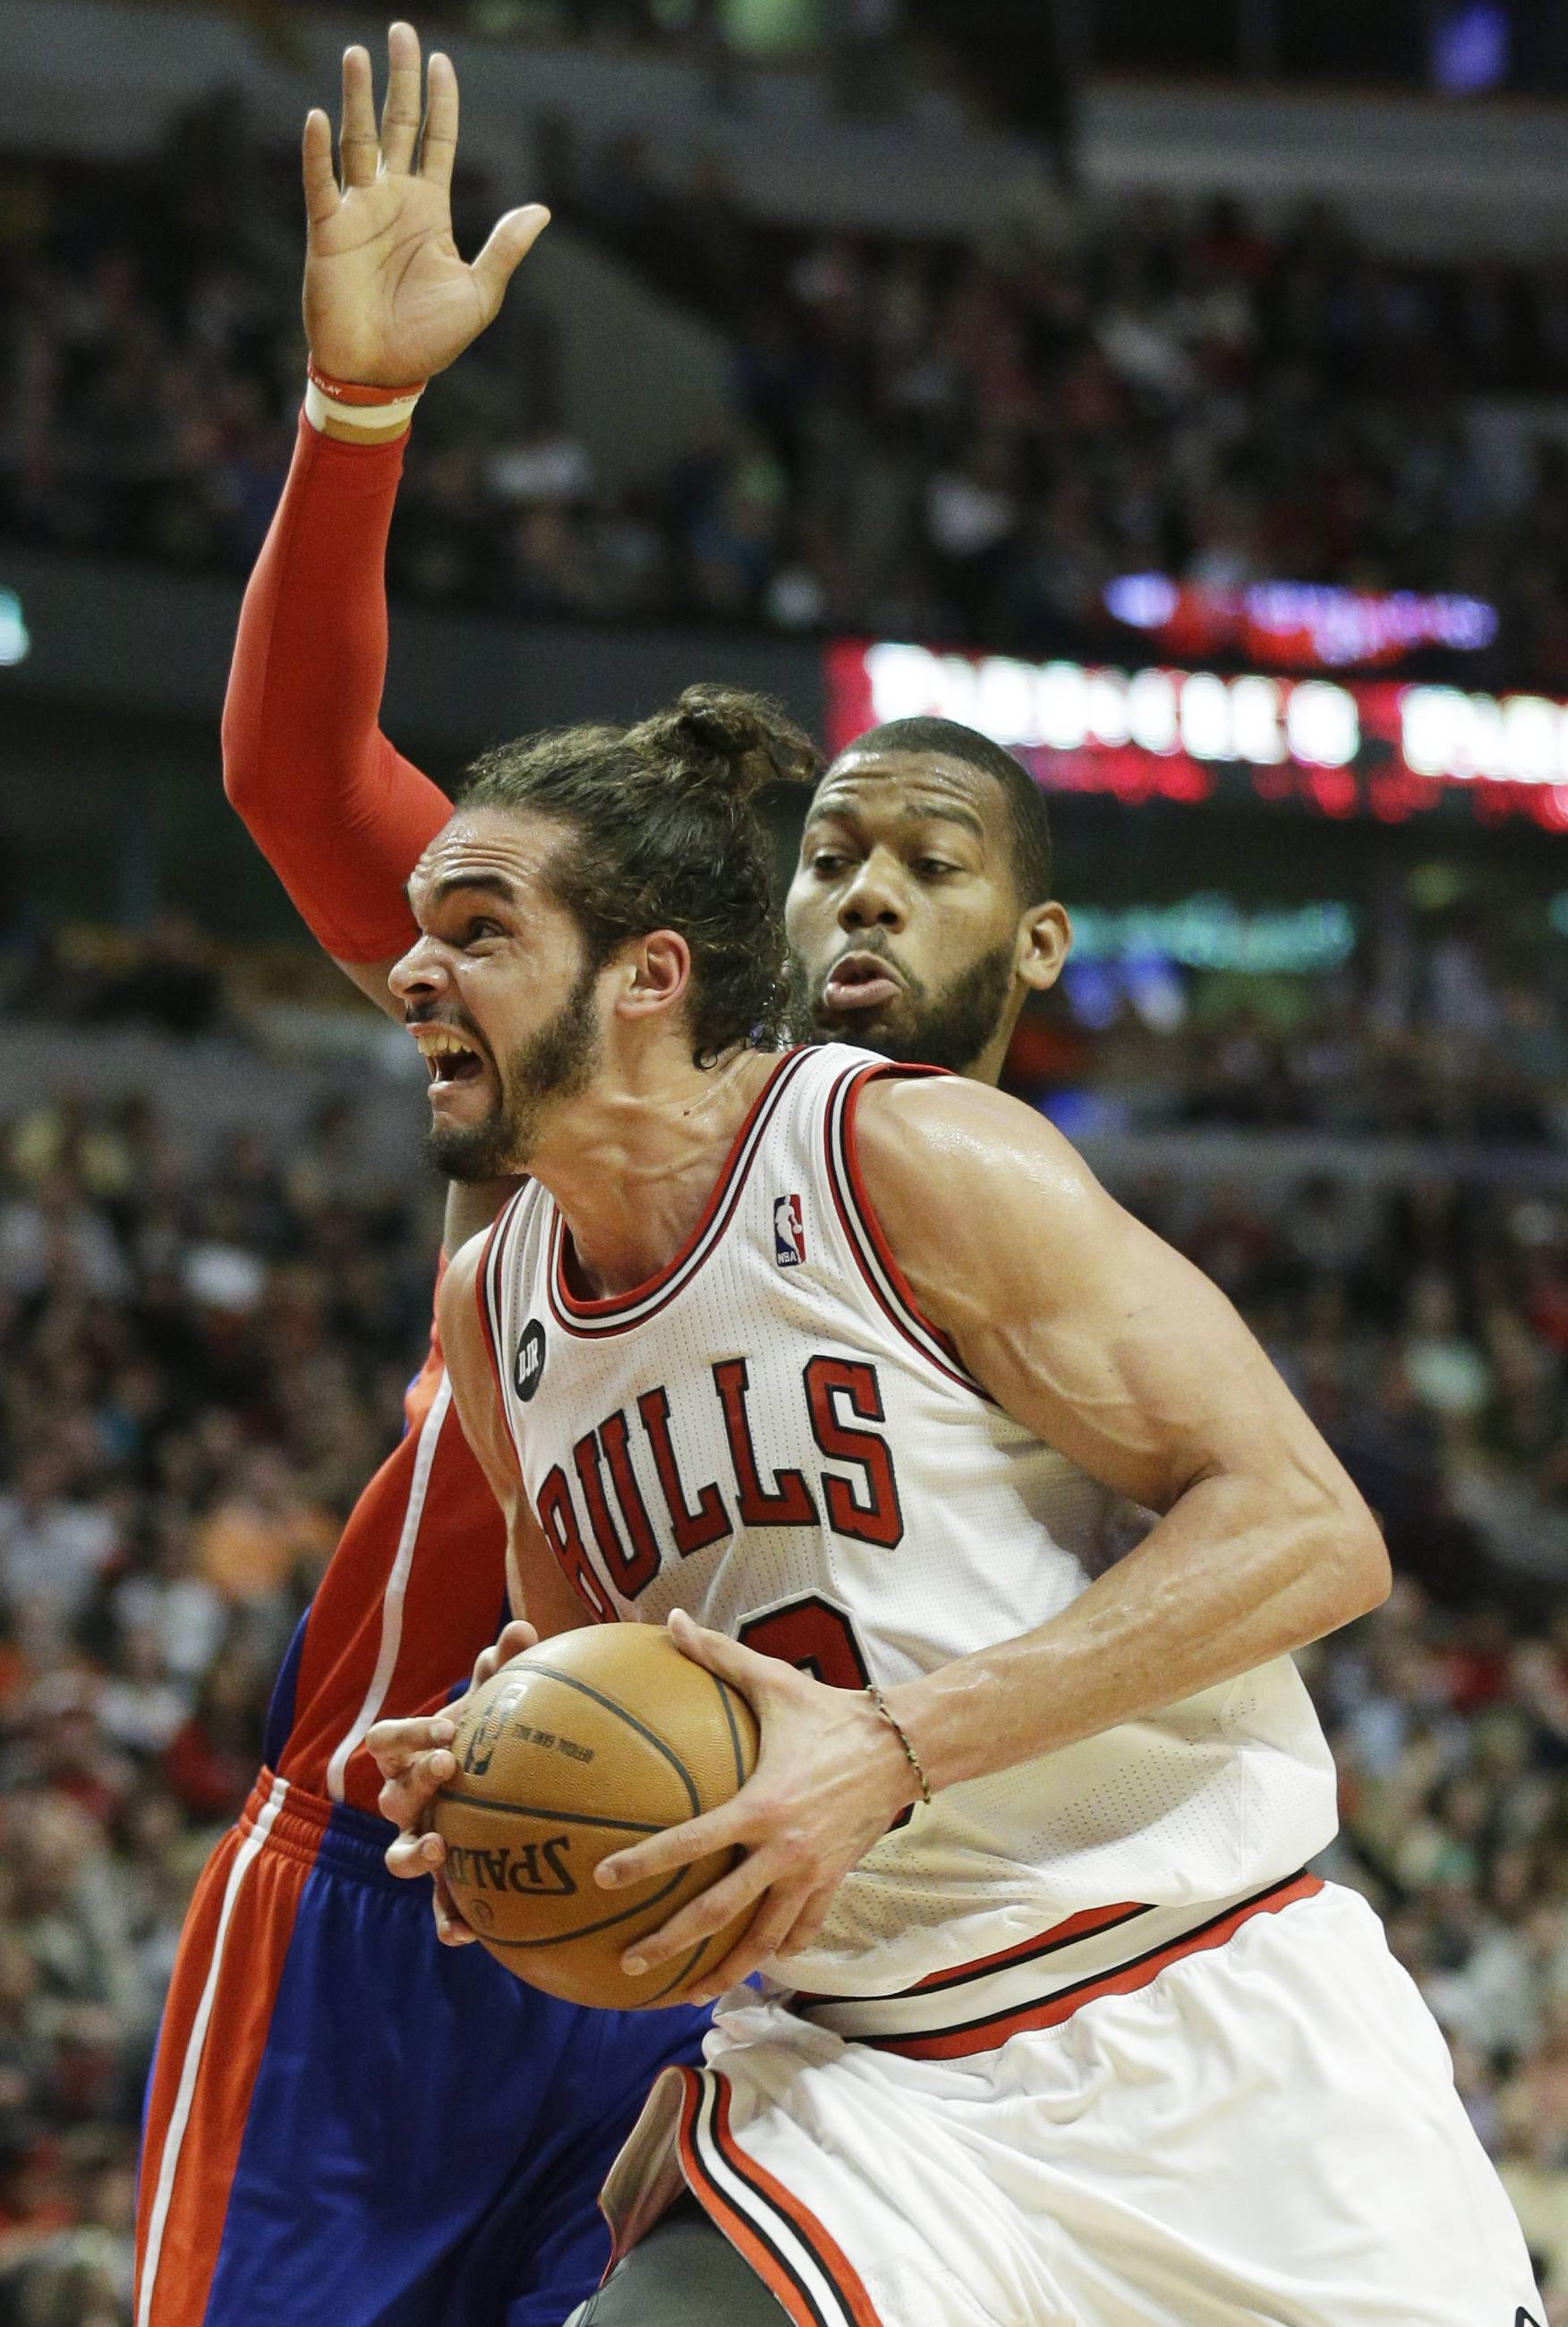 Chicago Bulls center Joakim Noah (13) drives against Detroit Pistons forward Greg Monroe (10) during the second half of an NBA basketball game in Chicago on Friday. The Bulls won 106-98.